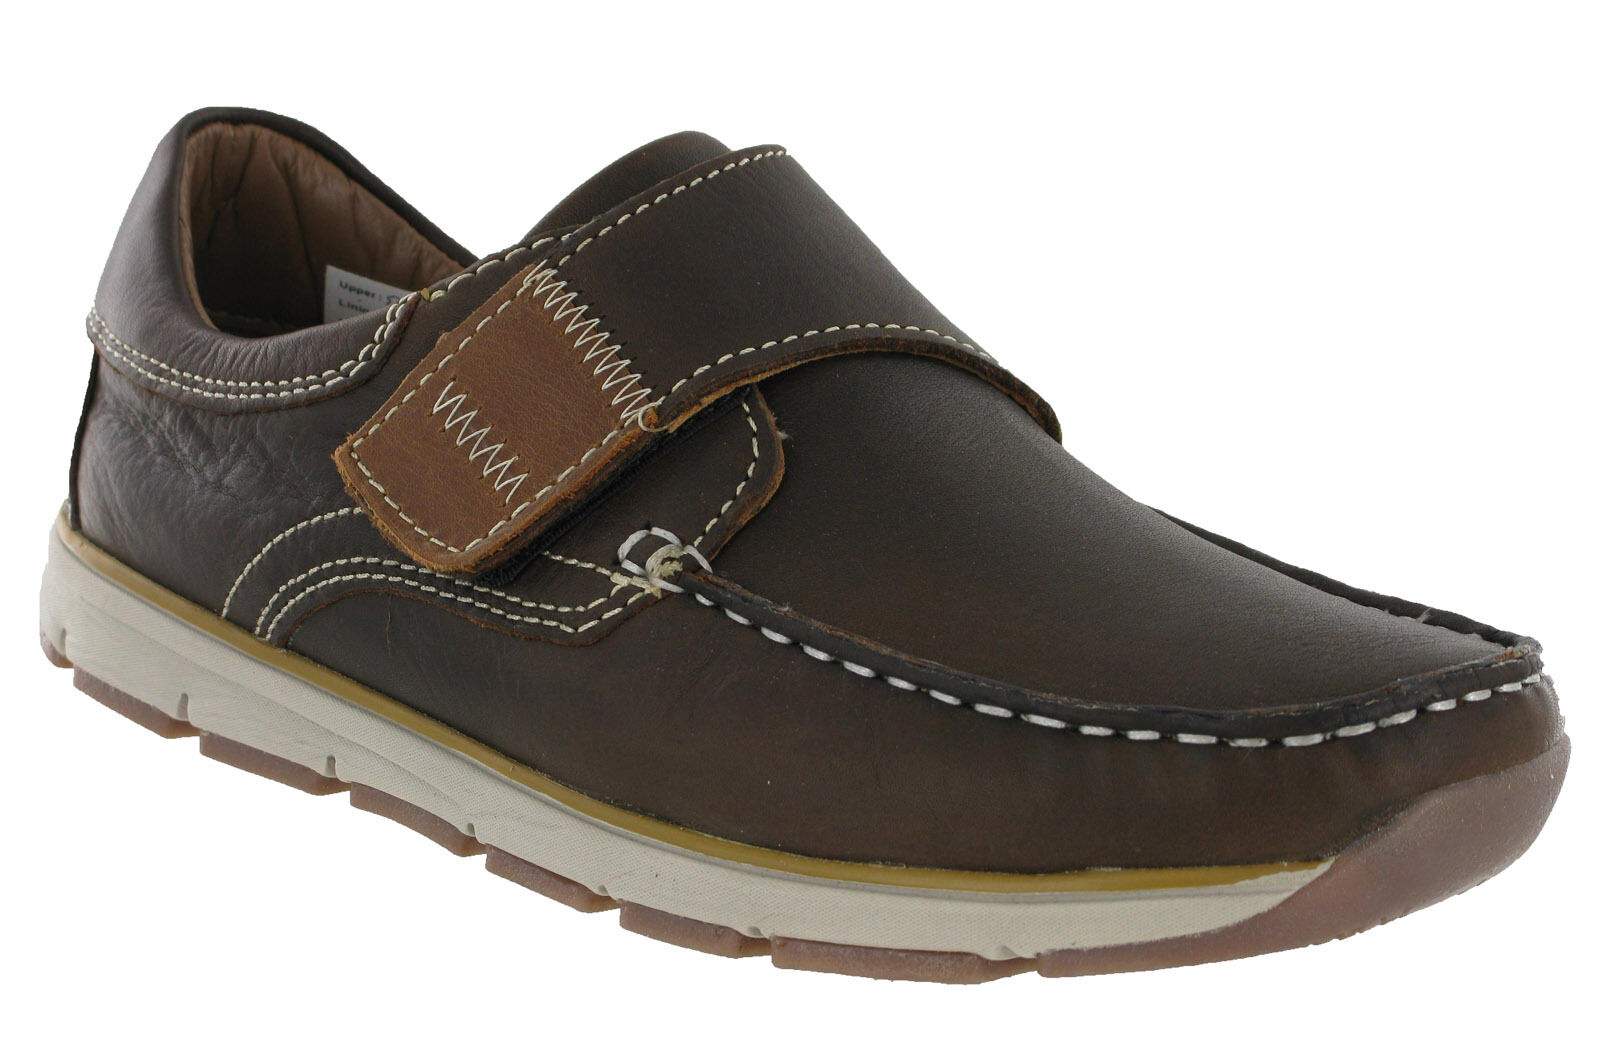 Roamers Moccasin Boat Boat Boat Zapatos Touch Fastening Leather Lined Lightweight Hombre 13549c